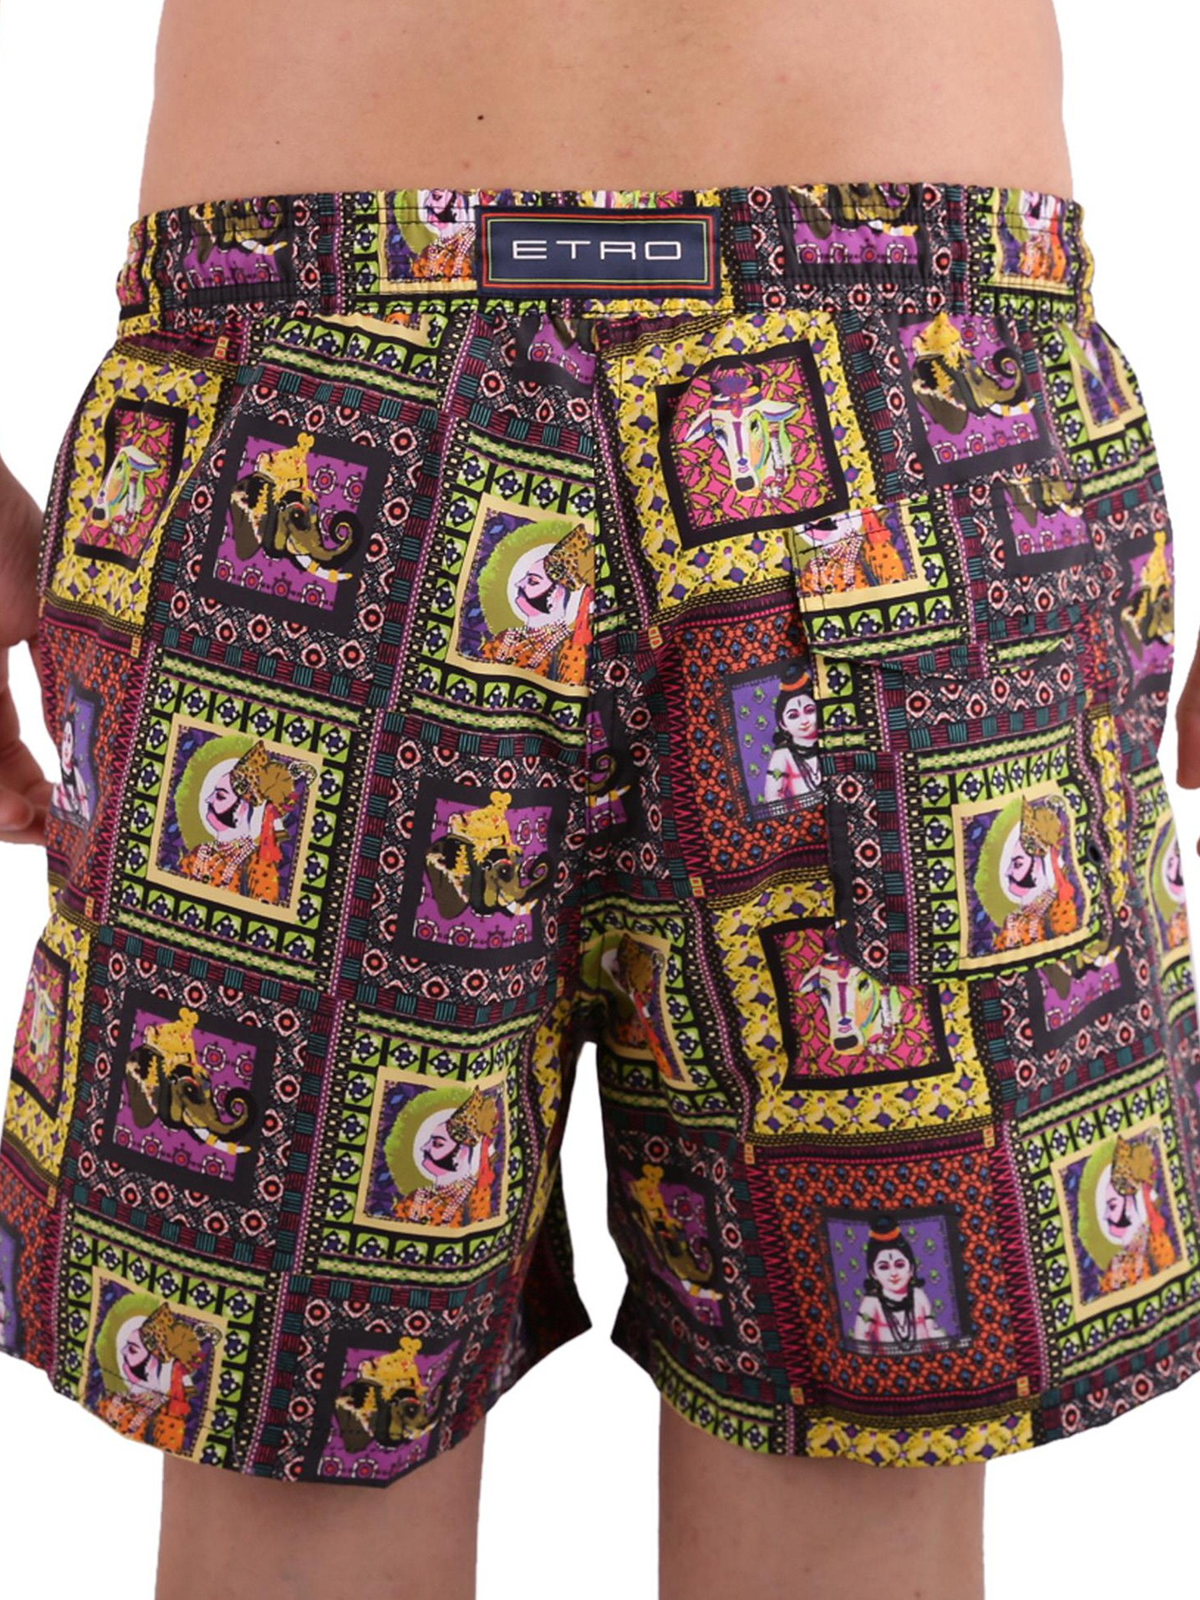 the latest 8cbf1 3764a Etro - Costume stampa etnica - Costumi piscina e boxer ...